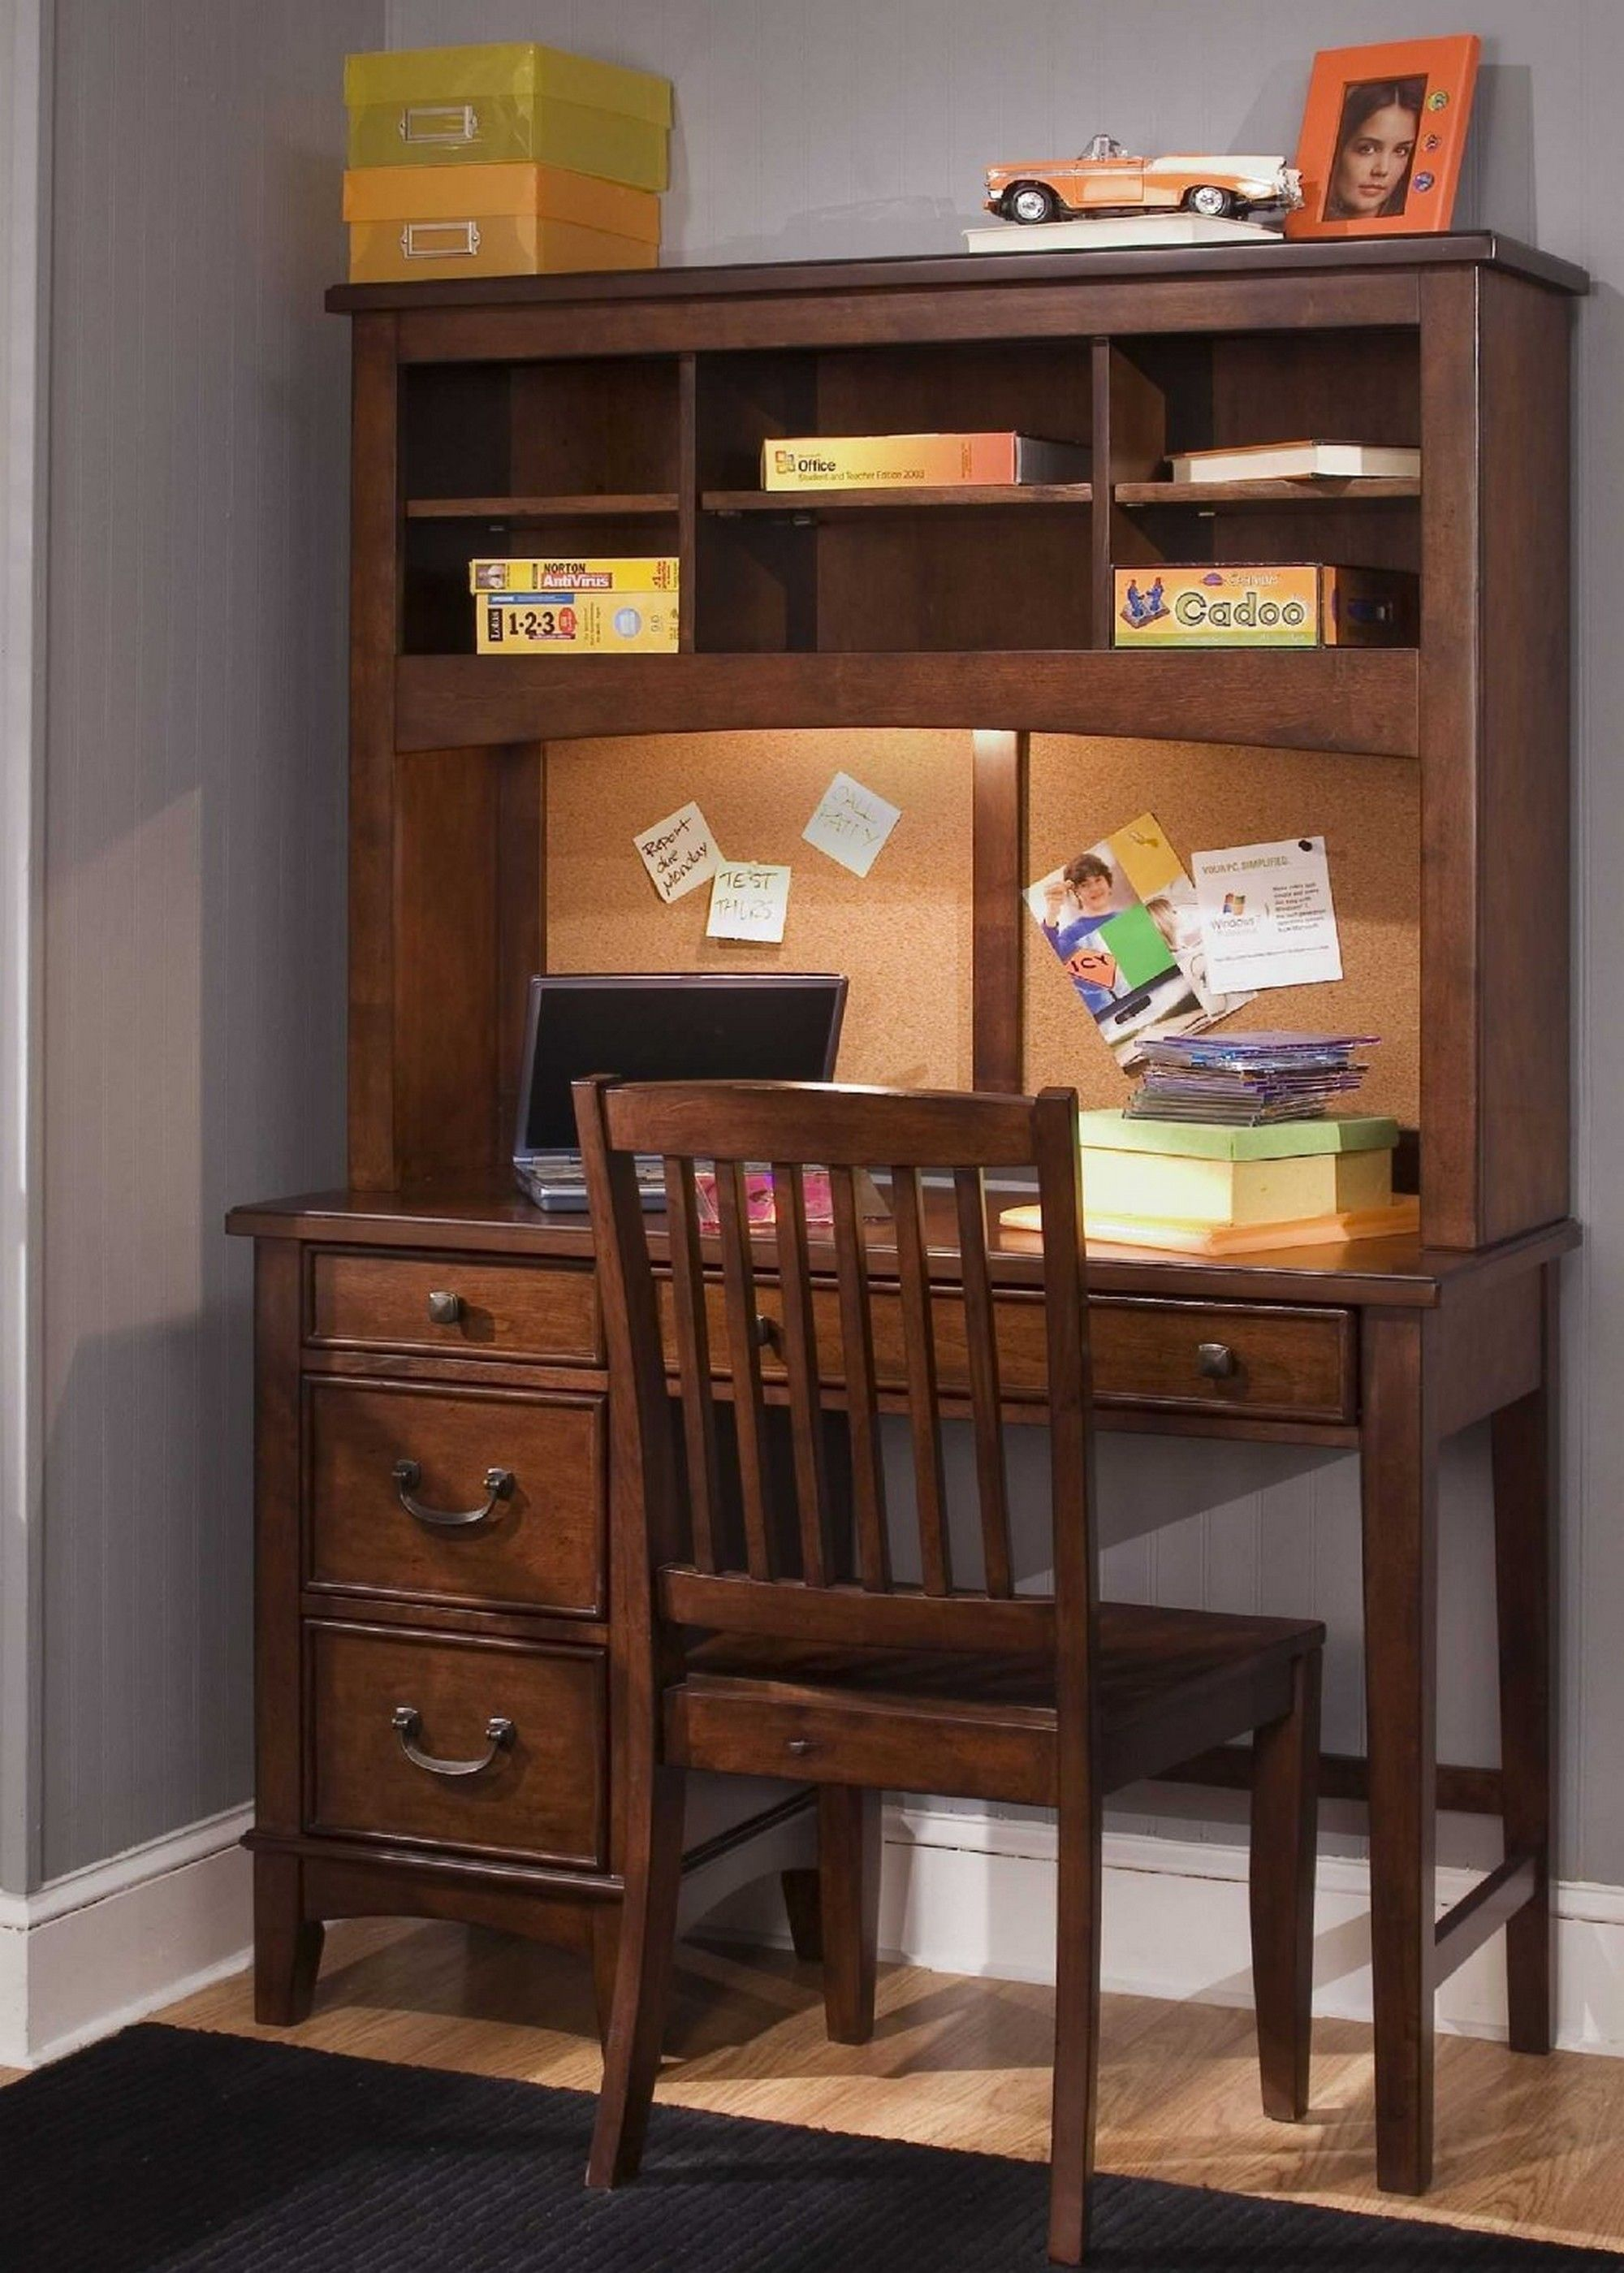 Etonnant Bedroom Traditional Study Table For Small Rooms Decorated Standing Shelves  Finest Study Table For Small Rooms Increasing Kids Passion Design Ideas The  ...